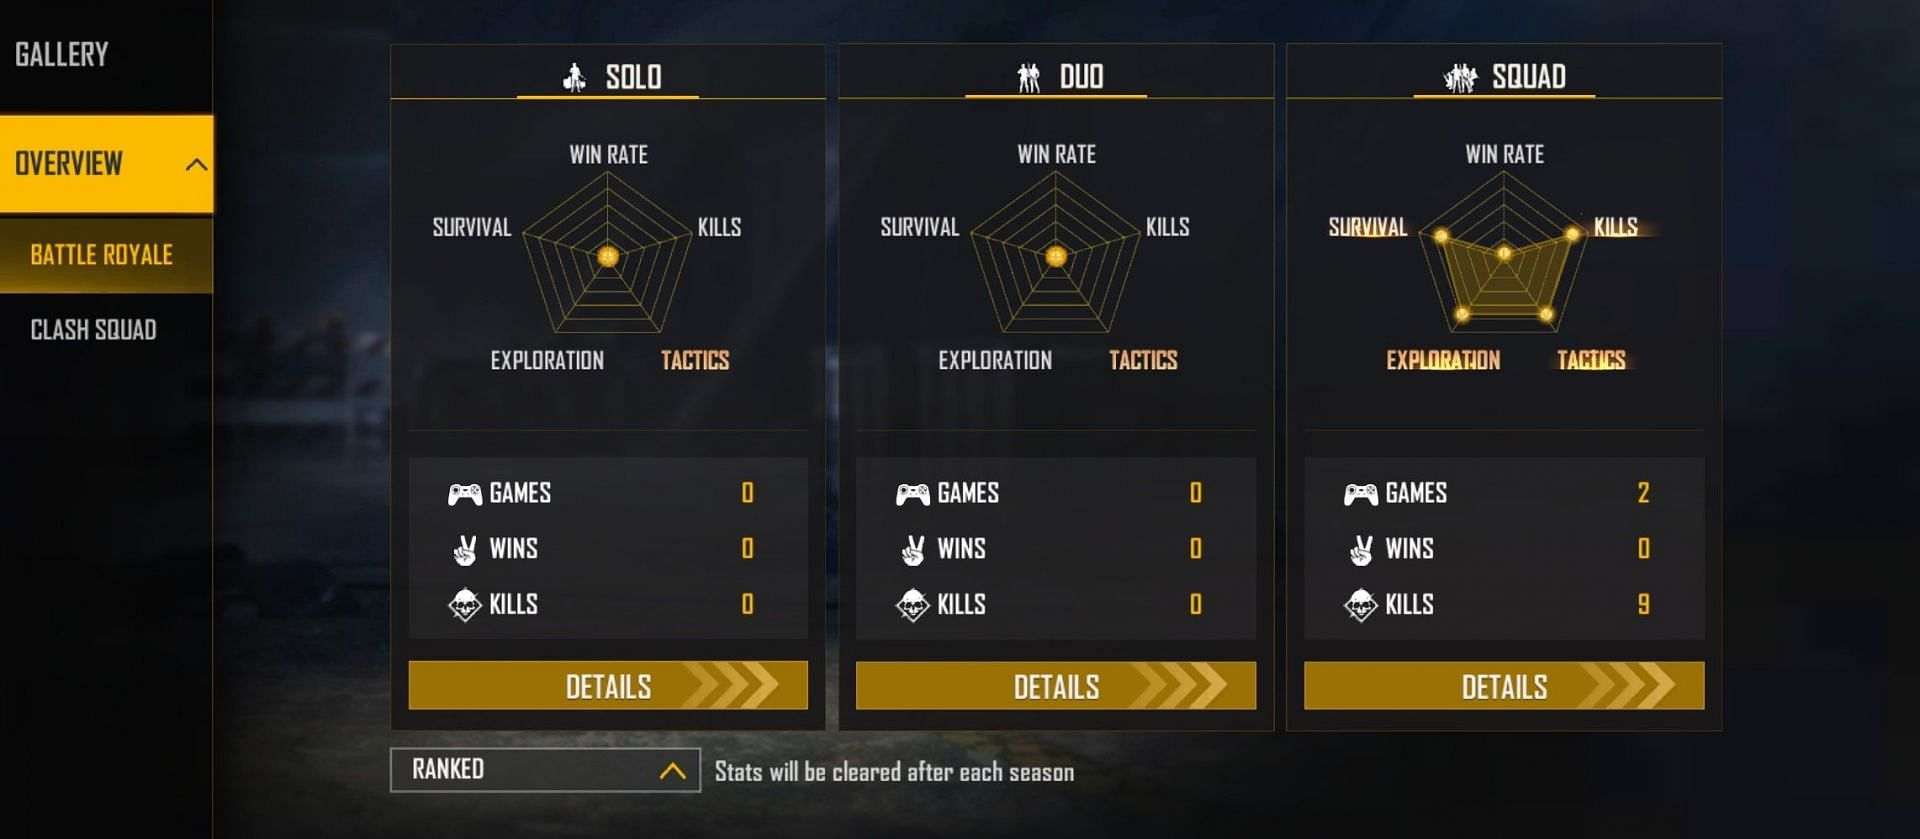 Lokesh Gamer has not played ranked solo or duo matches (Image via Free Fire)